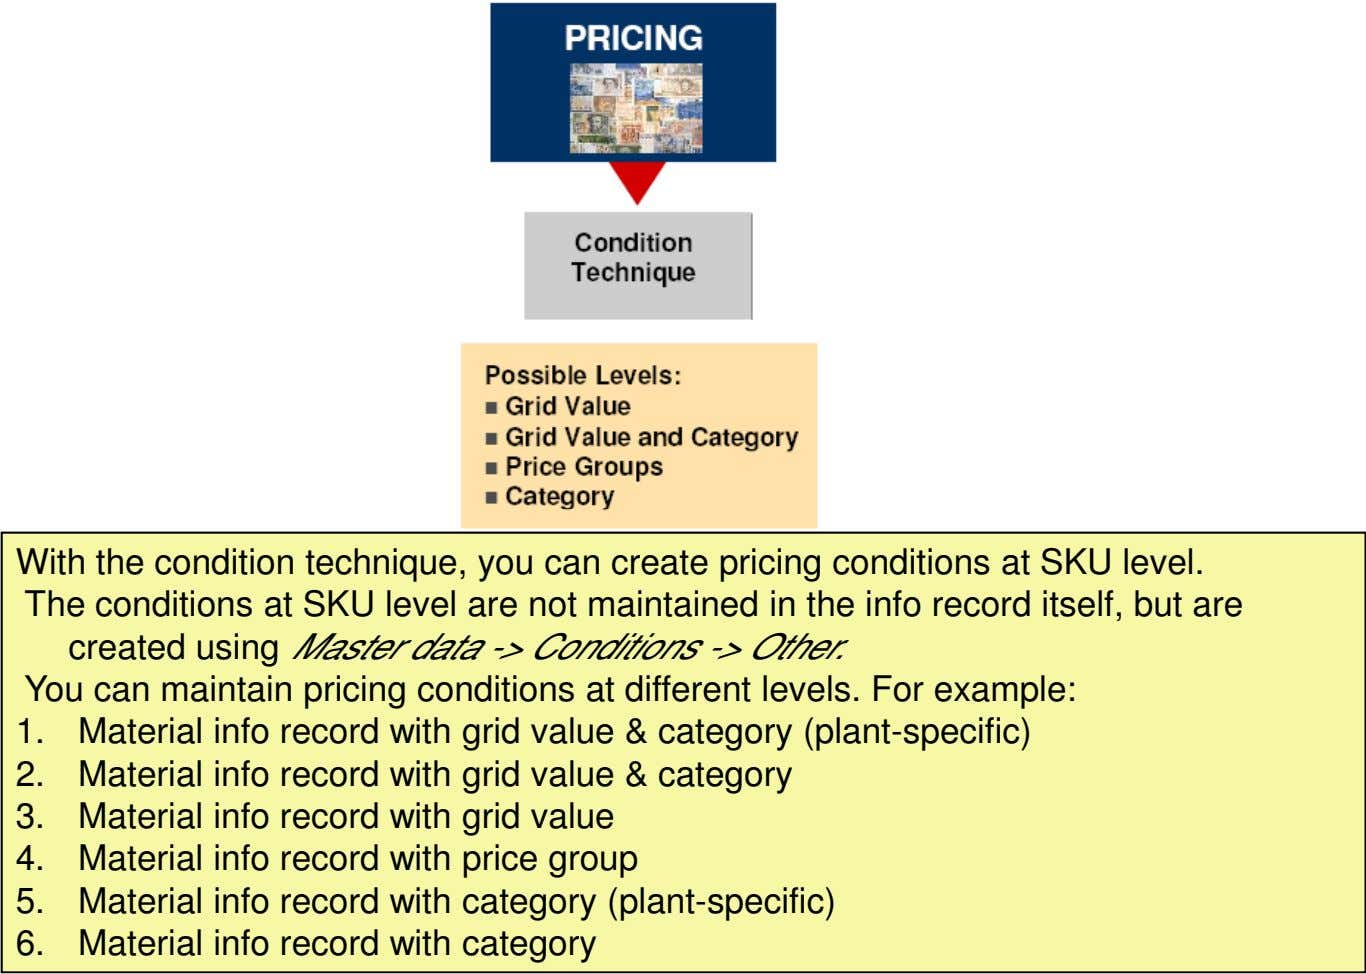 With the condition technique, you can create pricing conditions at SKU level. The conditions at